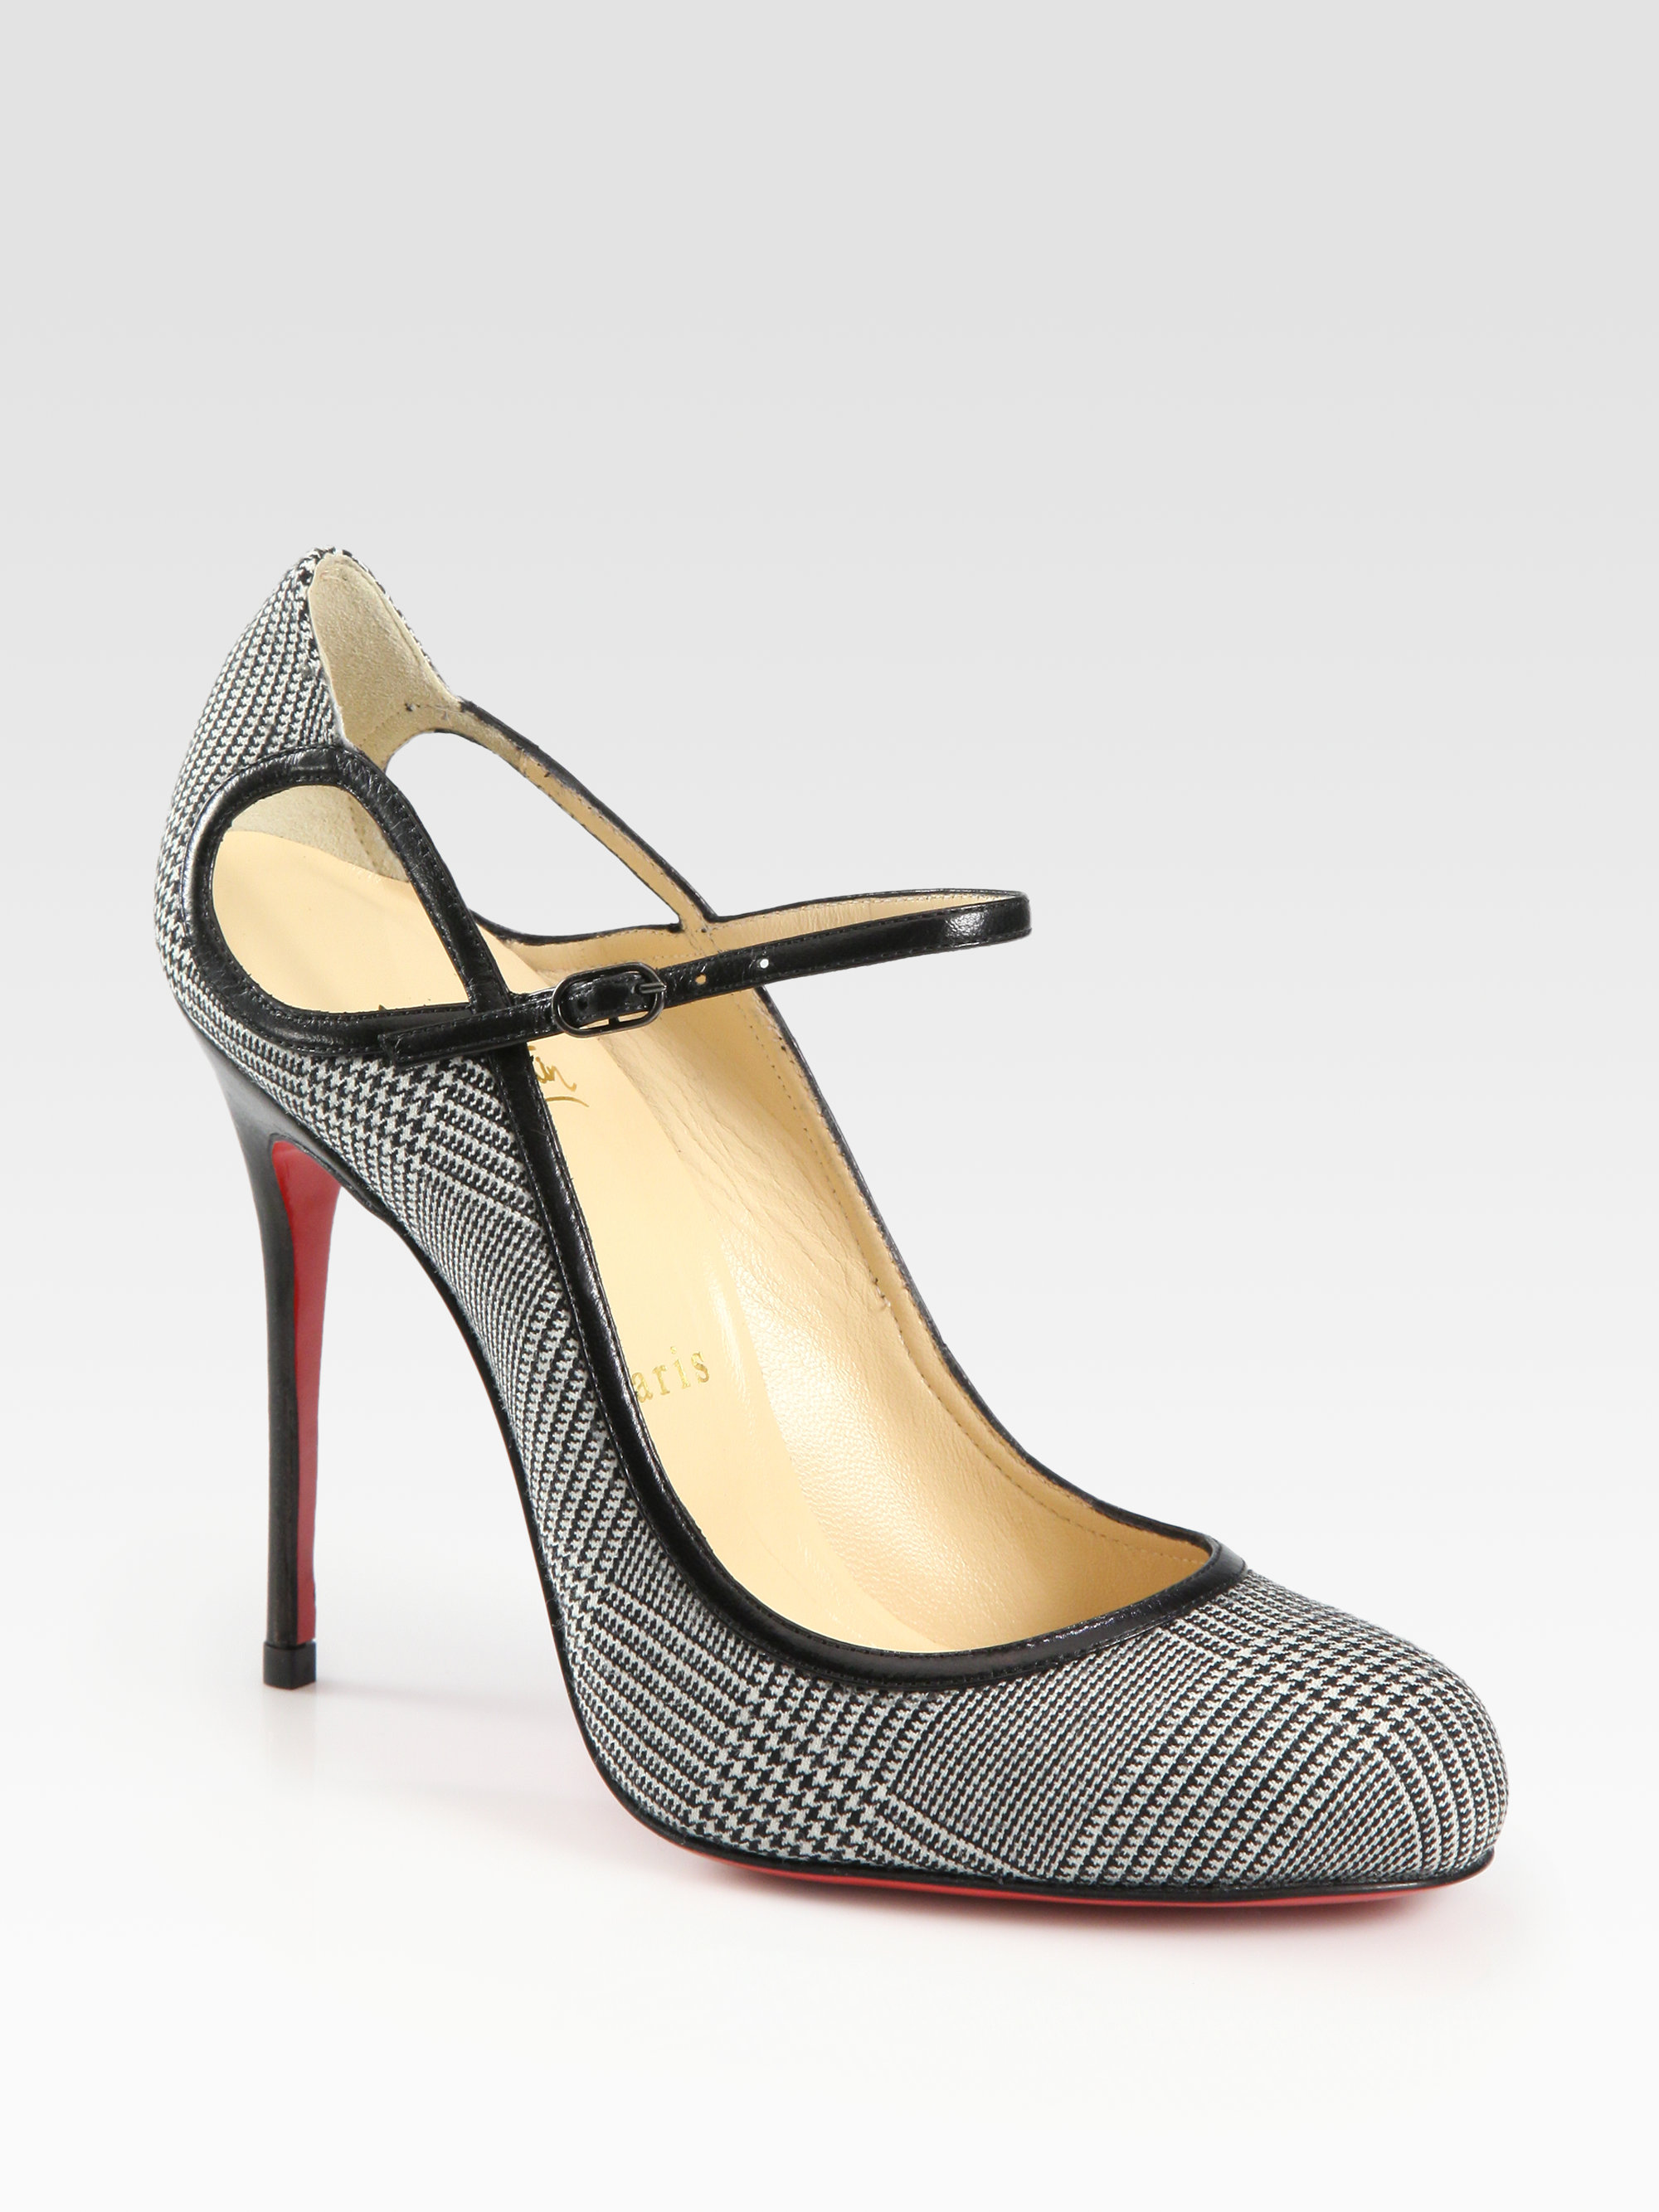 Artesur ? christian louboutin Daffodile mary-jane pumps Black and ...